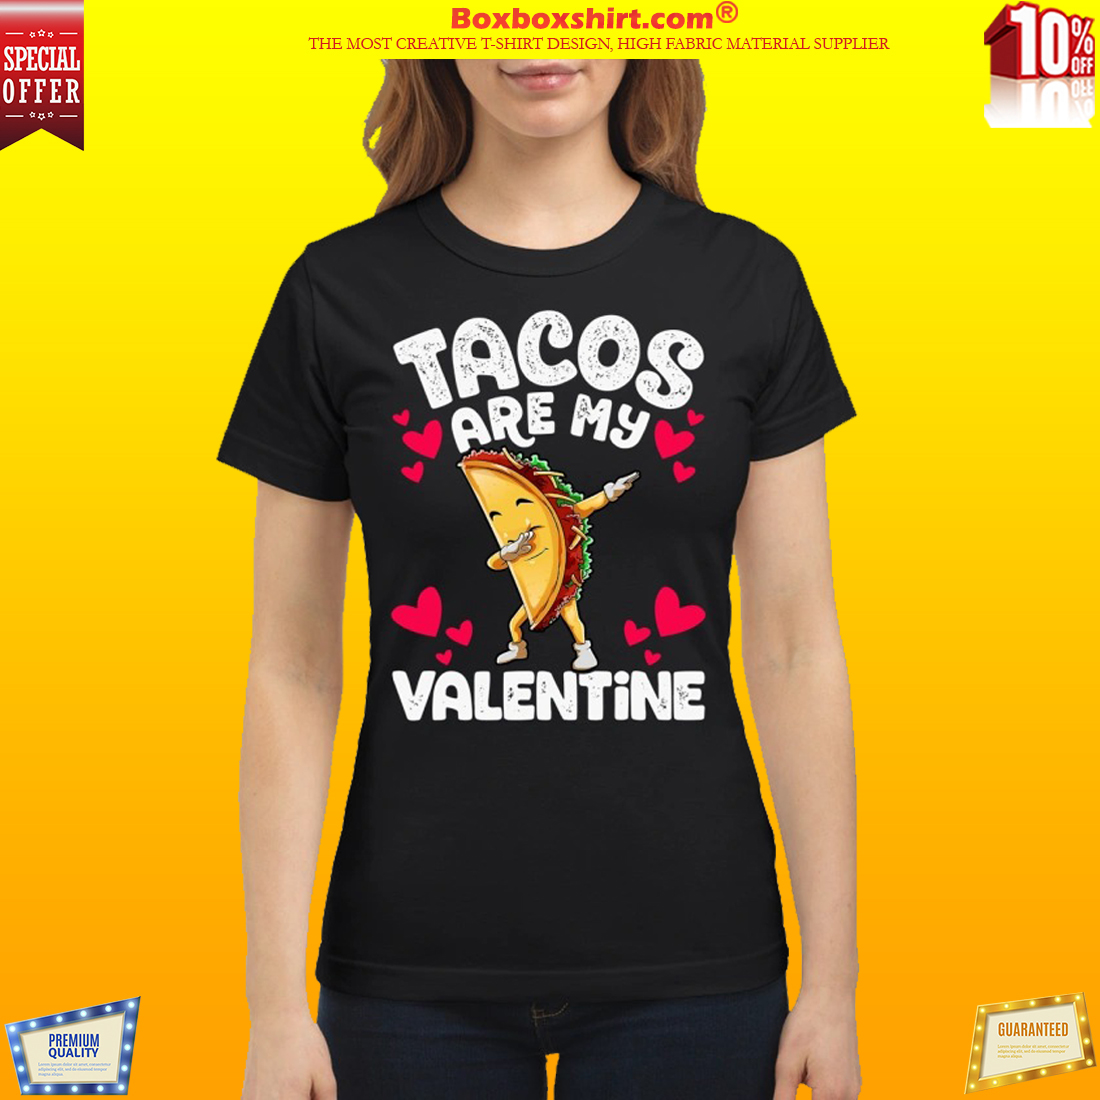 Tacos are my valentine shirt